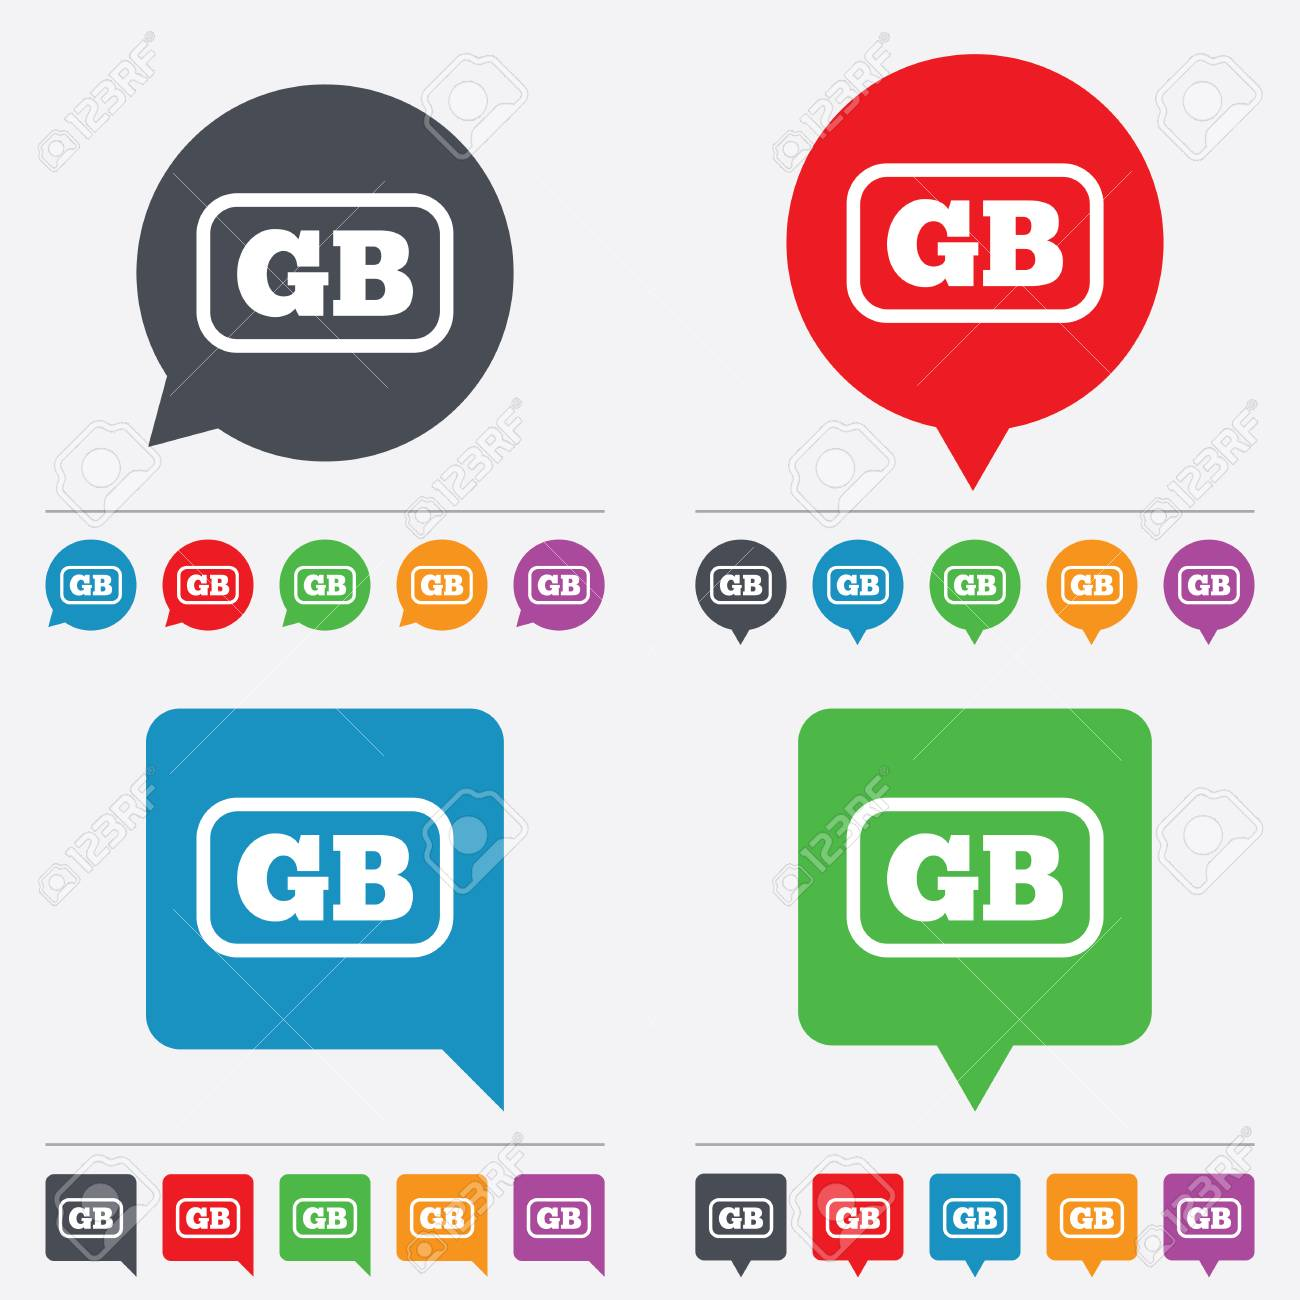 british language sign icon gb great britain translation symbol